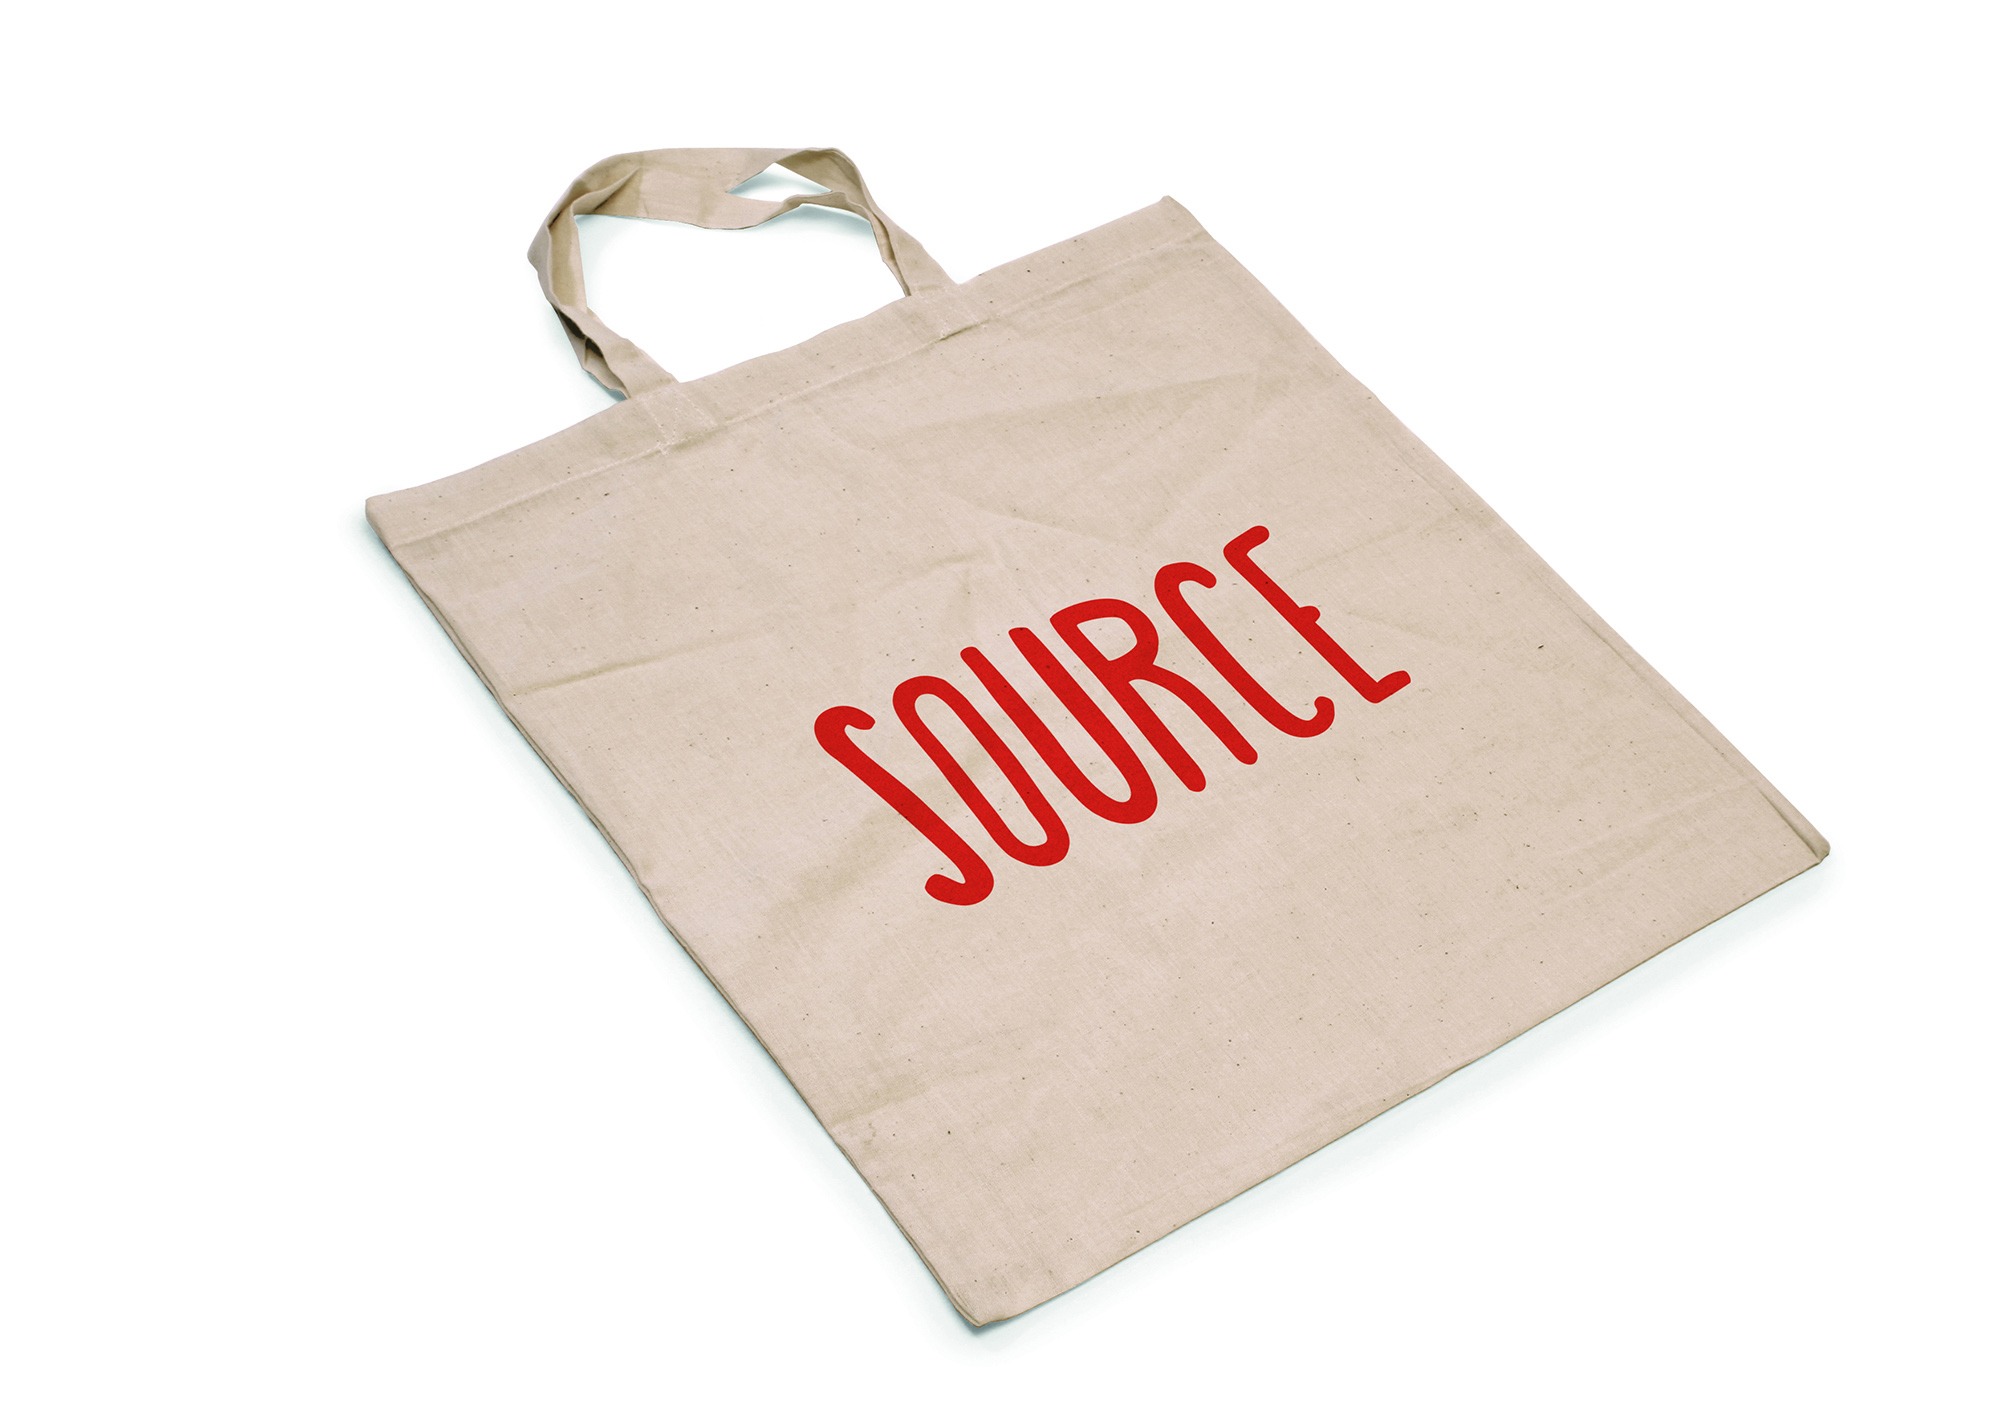 right SOURCE-TOTE-BAG-IMPRESSION-SERIGRAPHIE-PROMOTIONNEL-COMMUNICATION-GOODIES-CADEAU-MARQUE-LOGO